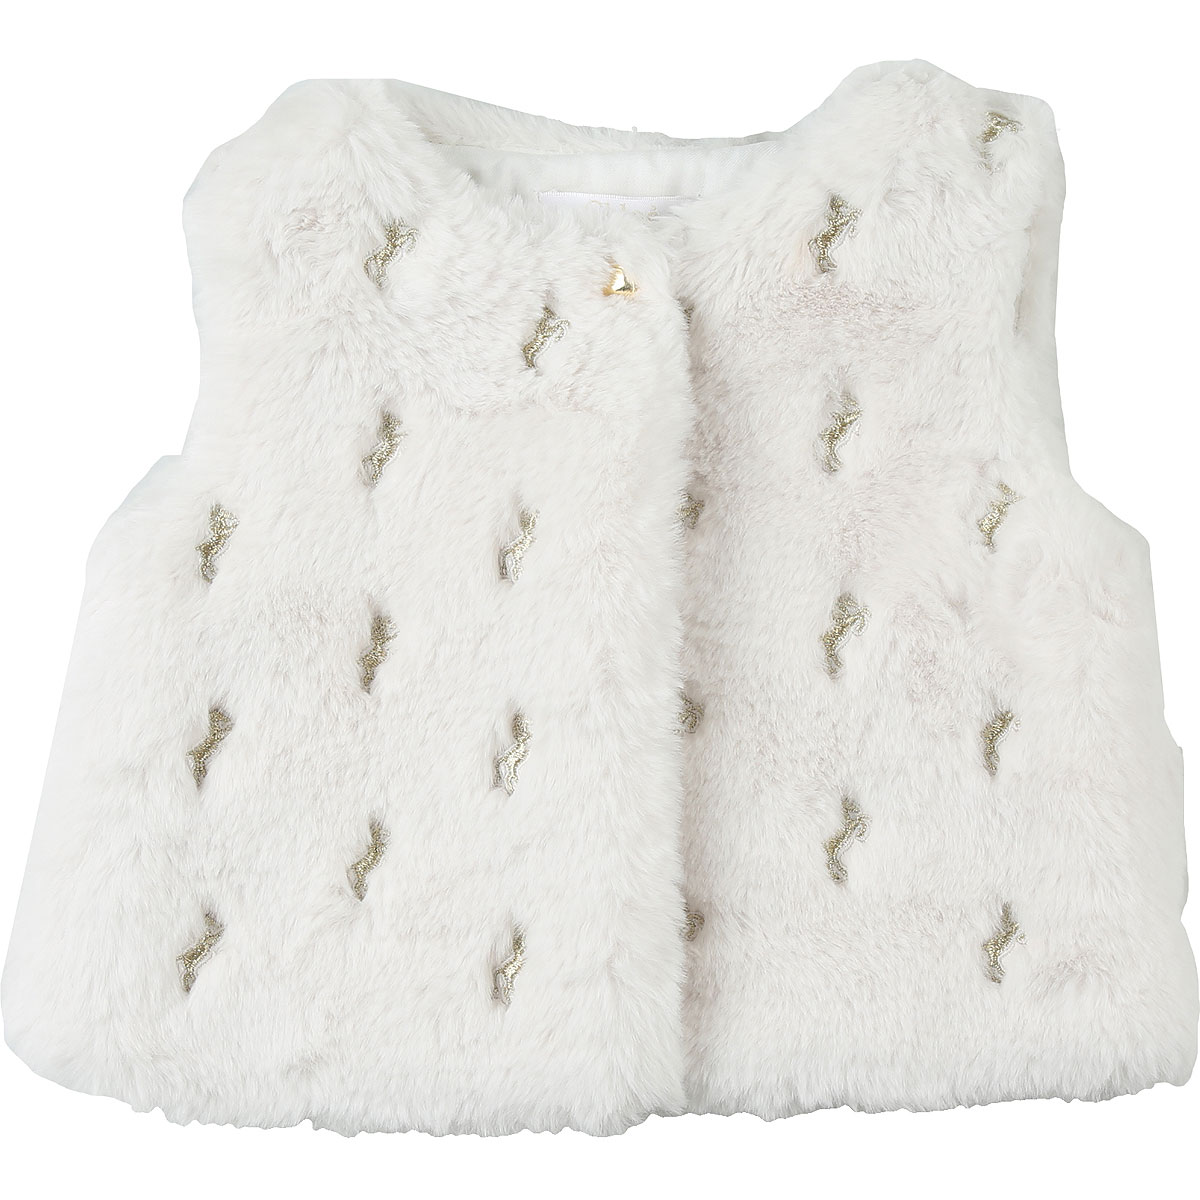 Chloe Baby Coats for Girls On Sale, White, polyester, 2019, 12M 18M 2Y 3Y 9M